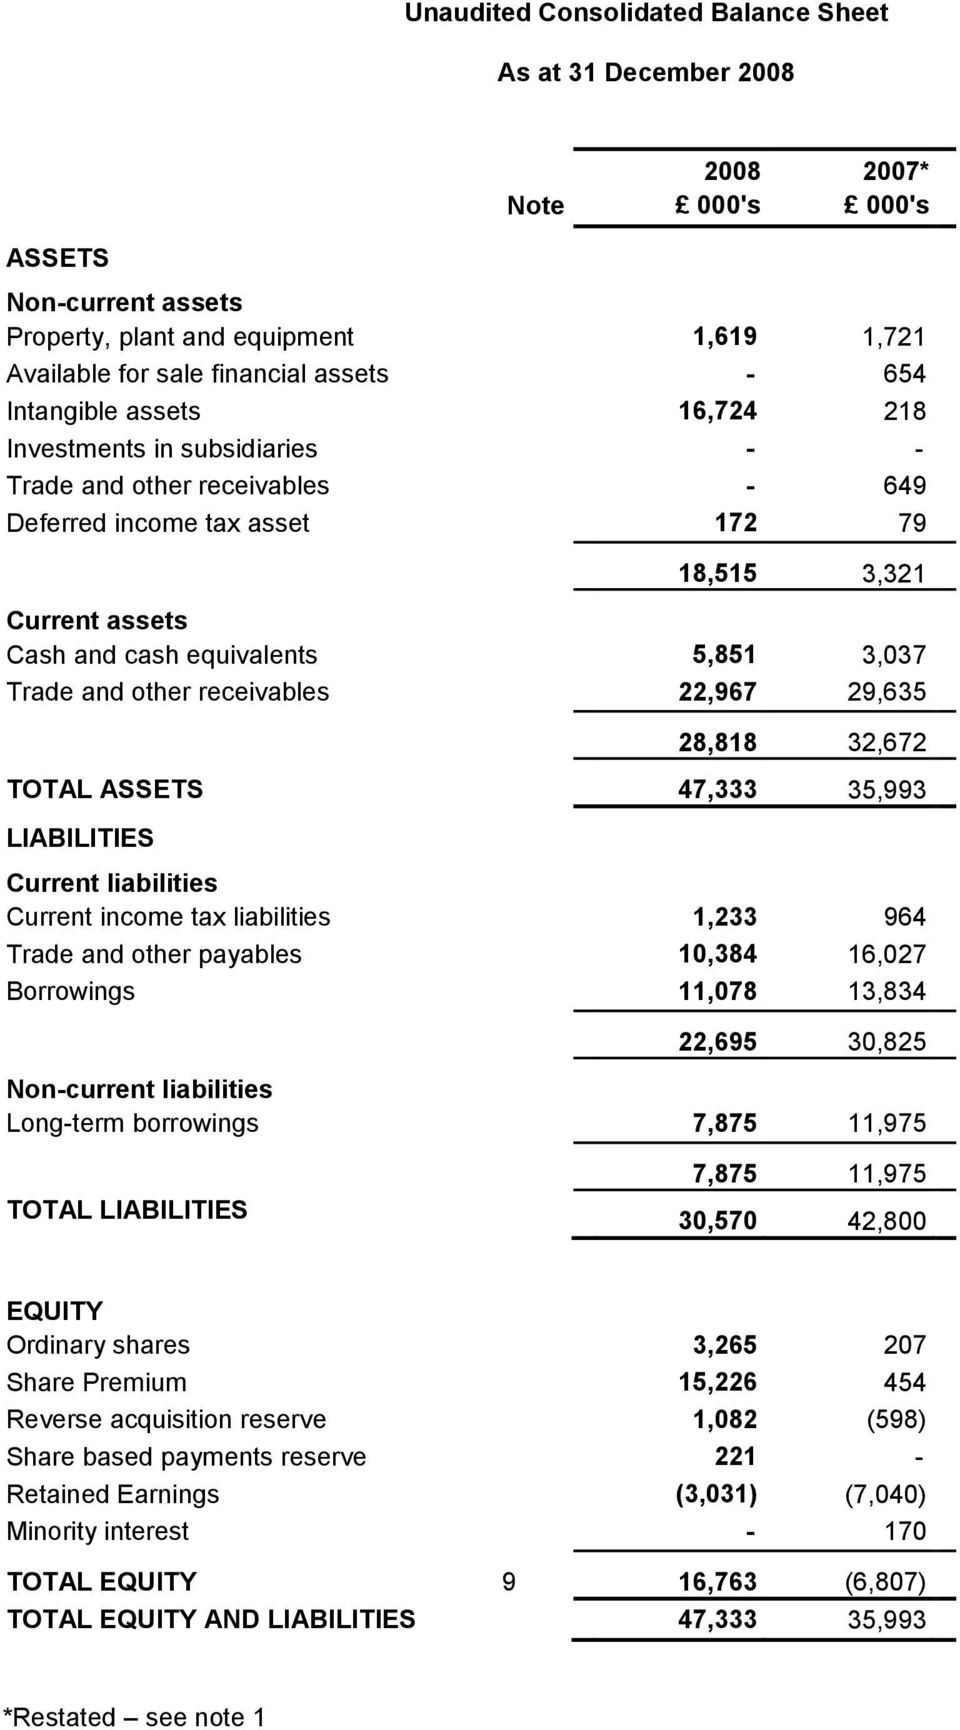 receivables 22,967 29,635 28,818 32,672 TOTAL ASSETS 47,333 35,993 LIABILITIES Current liabilities Current income tax liabilities 1,233 964 Trade and other payables 10,384 16,027 Borrowings 11,078